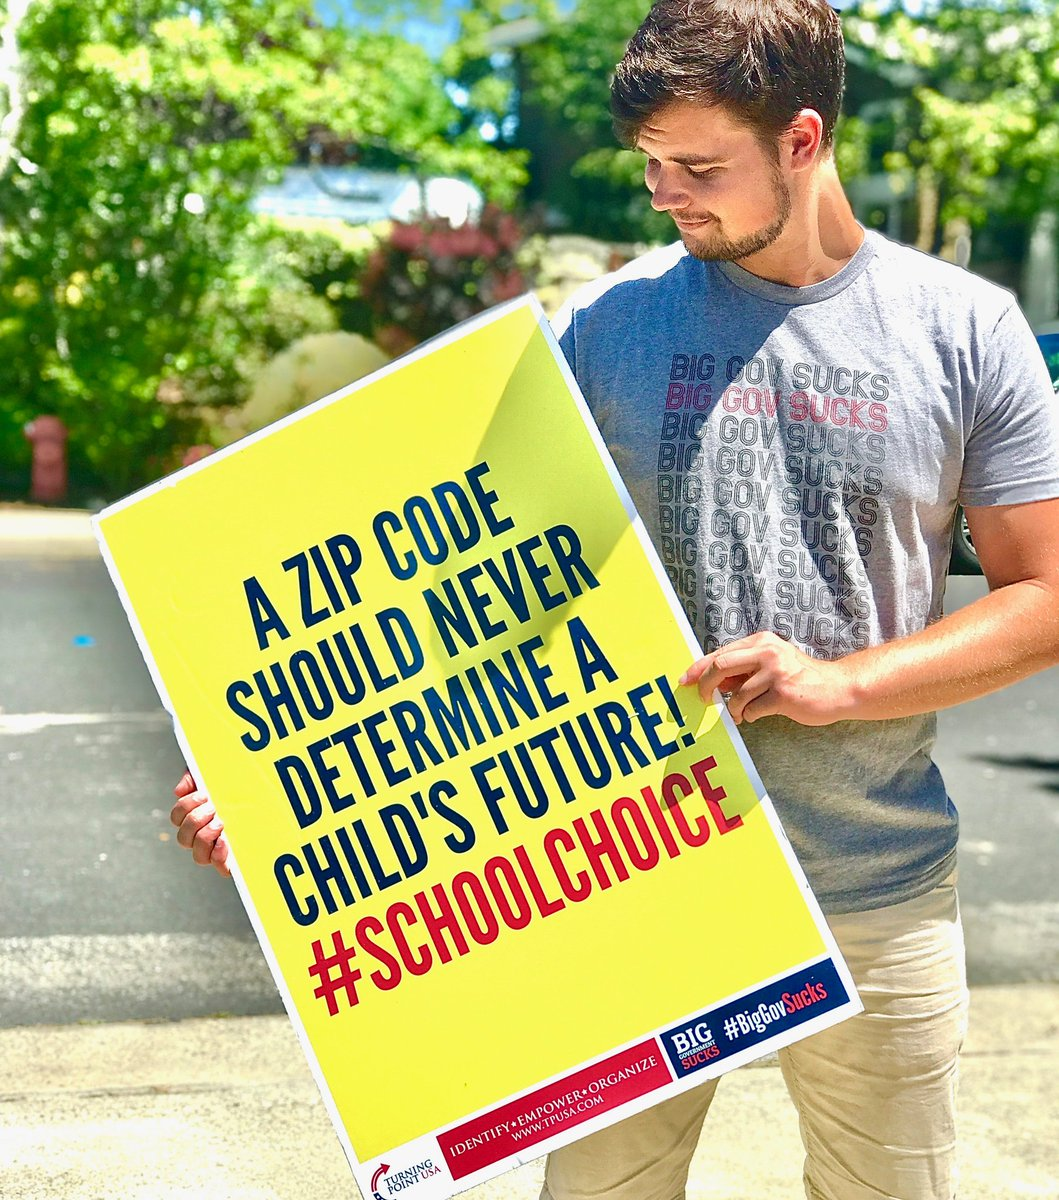 A Zip Code Shouldn't Determine Your Future! #SupportSchoolChoice